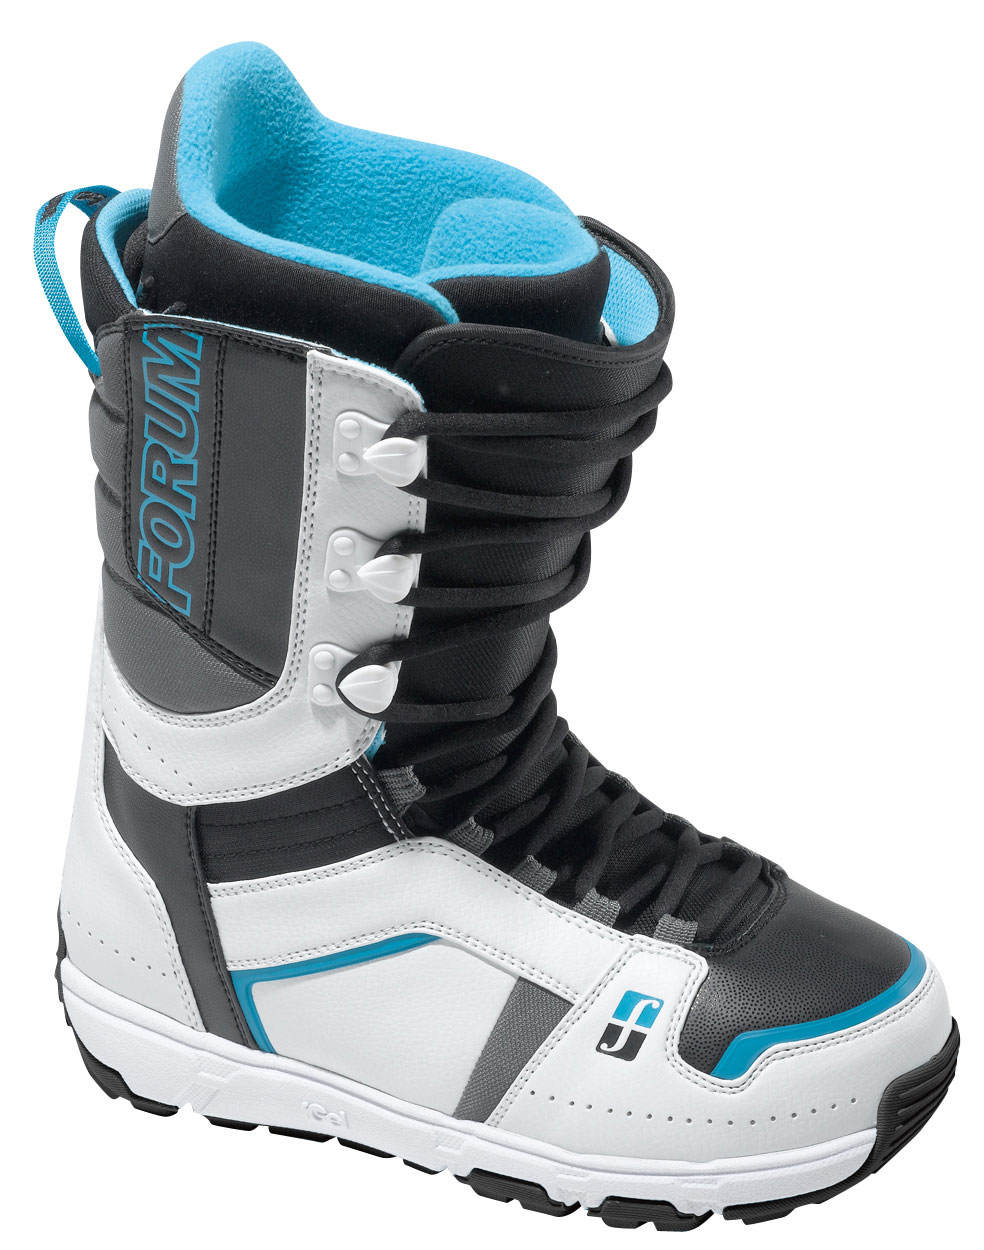 Snowboard A new classic. The Forum Booter Snowboard Boots combines a classic skate look with cutting-edge comfort and performance. Forever Fit construction never packs out, eliminating foot slop and increasing edge control. The Level 3 liner envelops your foot in plush comfort. The FGel in both the liner and the Good Vibes outsole, combined with the Footpillow, means you don't have to feel the classic heel bruise.Key Features of the Forum Booter Snowboard Boots: Flex: 5 Traditional lacing system: Tighten your boots as you like them with traditional shoe laces for a snug or loose fit. Up to you. Level 3 Liner with FGel: This comfortable and supportive liner gets the level 3 designation due to FGel in the heel. Add to this the Fleece lining and inSlick ease, and you'll be wearing these as your morning slippers. Good Vibes Outsole with FGel Cushioning: The Good Vibes outsole enables a more natural flex due to a multi-pod construction that lets feet feel the subtle sensations underfoot. Two pockets of encapsulated FGel deaden the bad vibes and ensure that only the Good Vibes get through. Footpillow: It's not a bed, it's a pillow. Get it? It's insanely comfy and squishy. The Footpillow features superior cushioning and dampening for heavy impacts while providing additional arch support, so you can ride hard all day Forever Fit Construction: Built from the inside out, Forever Fit construction ensures that your boot won't pack out. We started from scratch and re-engineered the entire boot to minimize materials and eliminate any potential slop. We took out so much unnecessary material that our 2011 boots measure one complete size smaller than year's past while retaining the perfect fit inside, from day one to day seventy-five Gold Cuff Links: Quick and easy internal lacing holds your foot deep in the ankle pocket for no lift and all-day comfort - $137.95